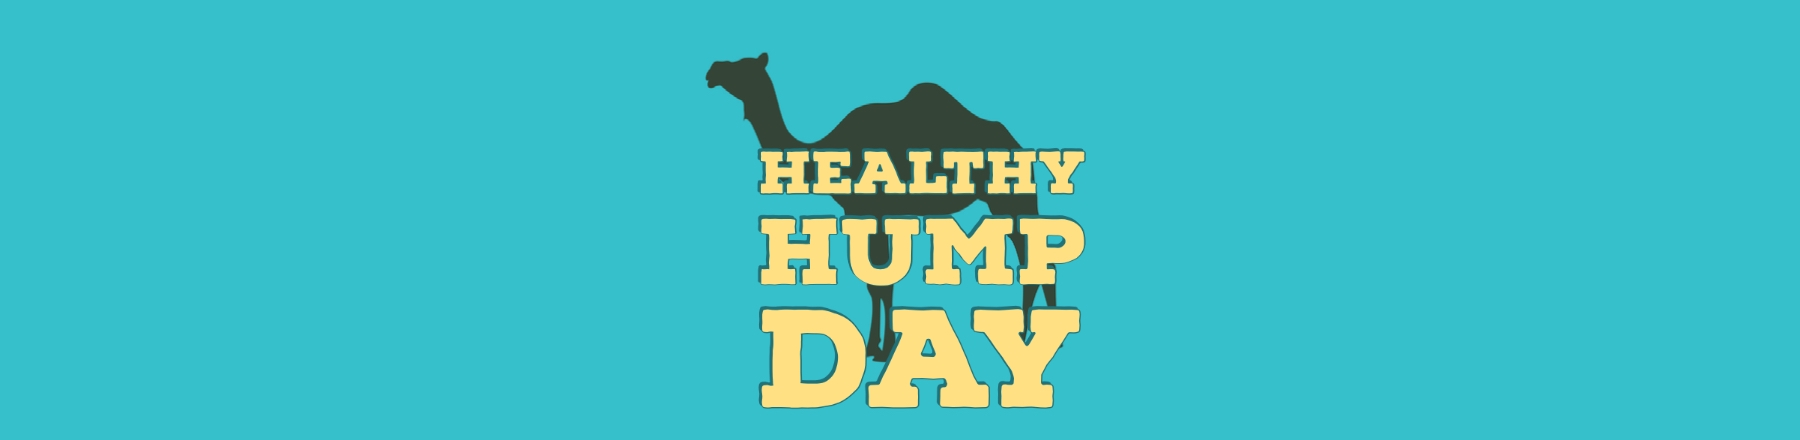 Prospect Lane / The Sharman's Cross Pub - Healthy Humpday